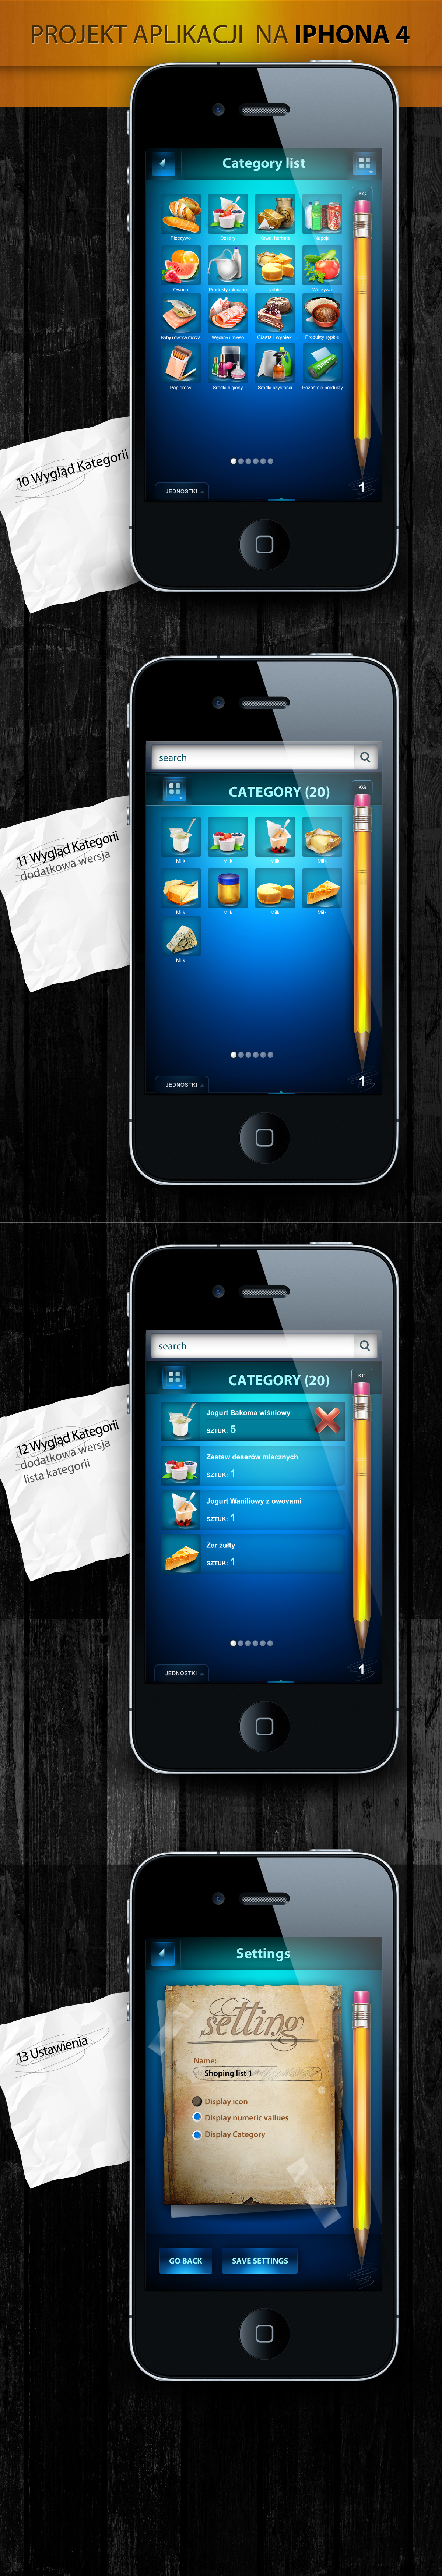 iphone 4 app -  other screen application by webdesigner1921